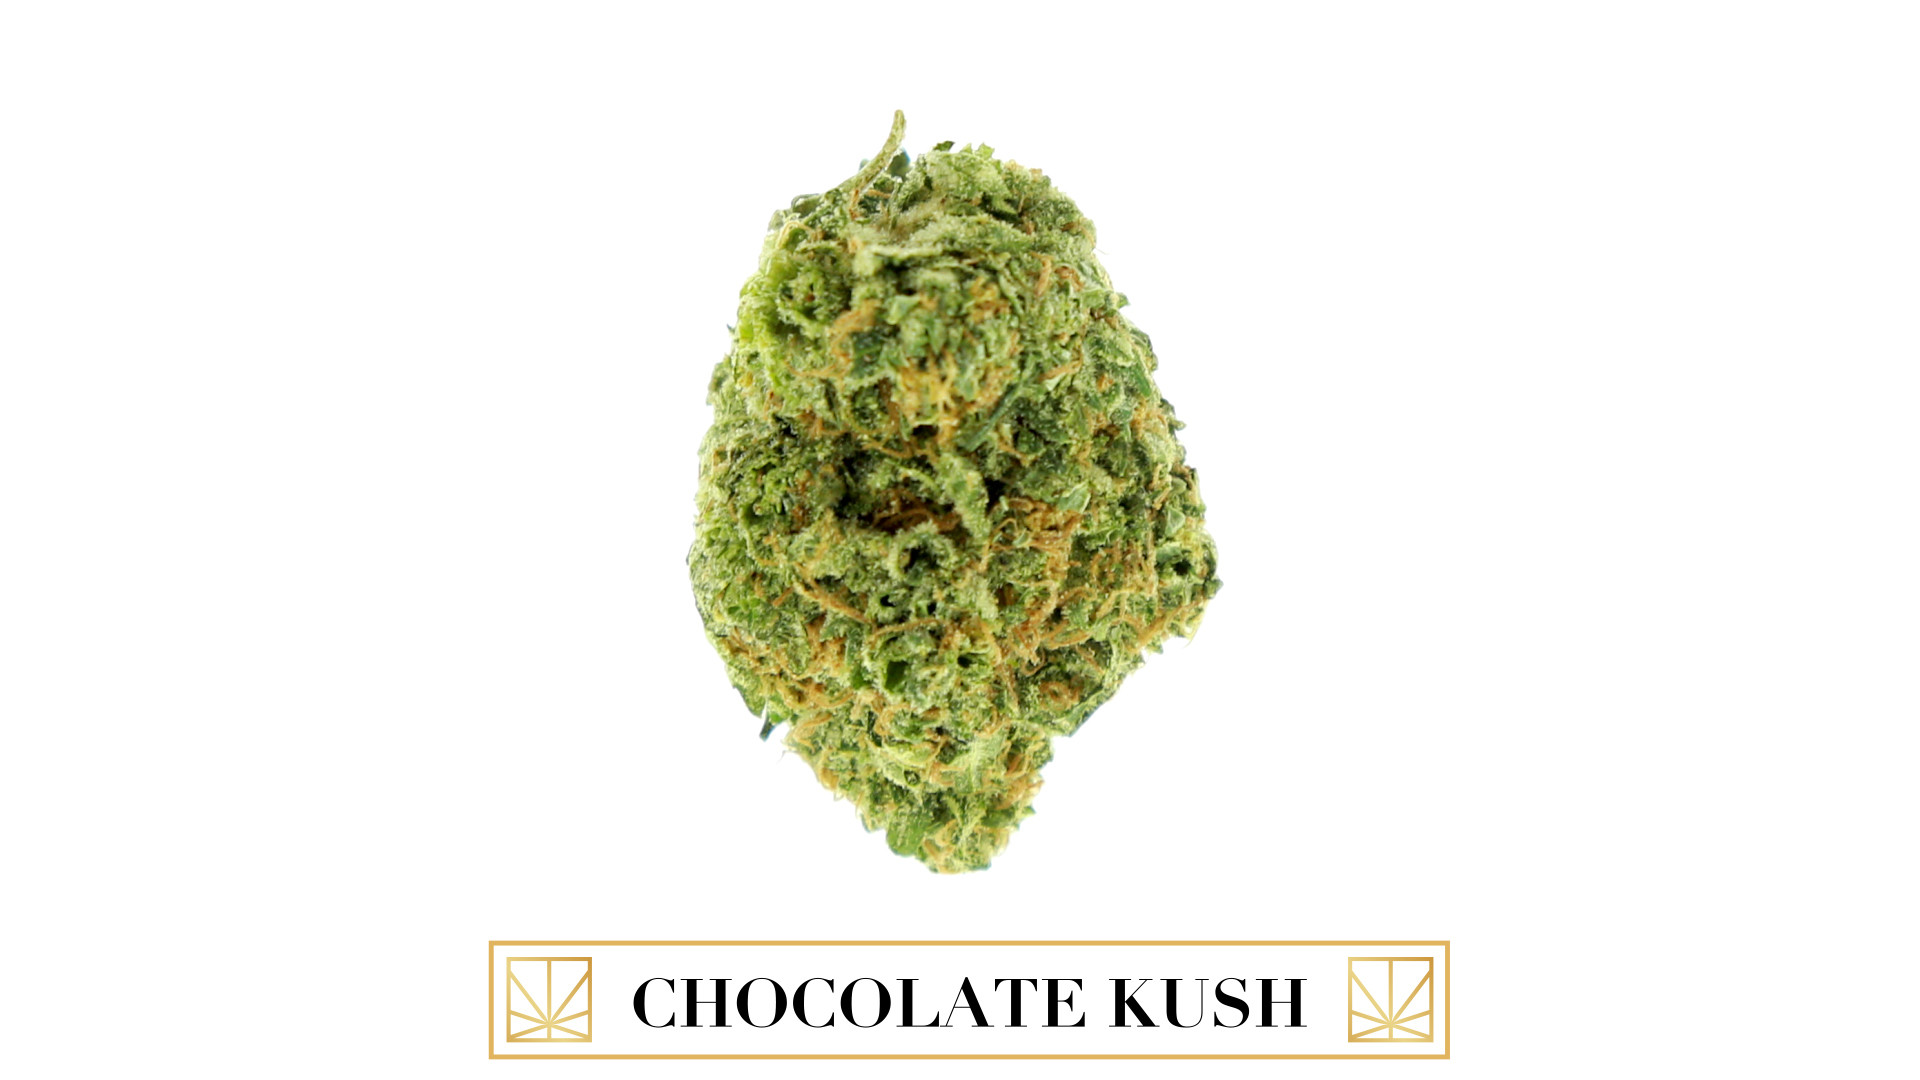 Chocolate Kush